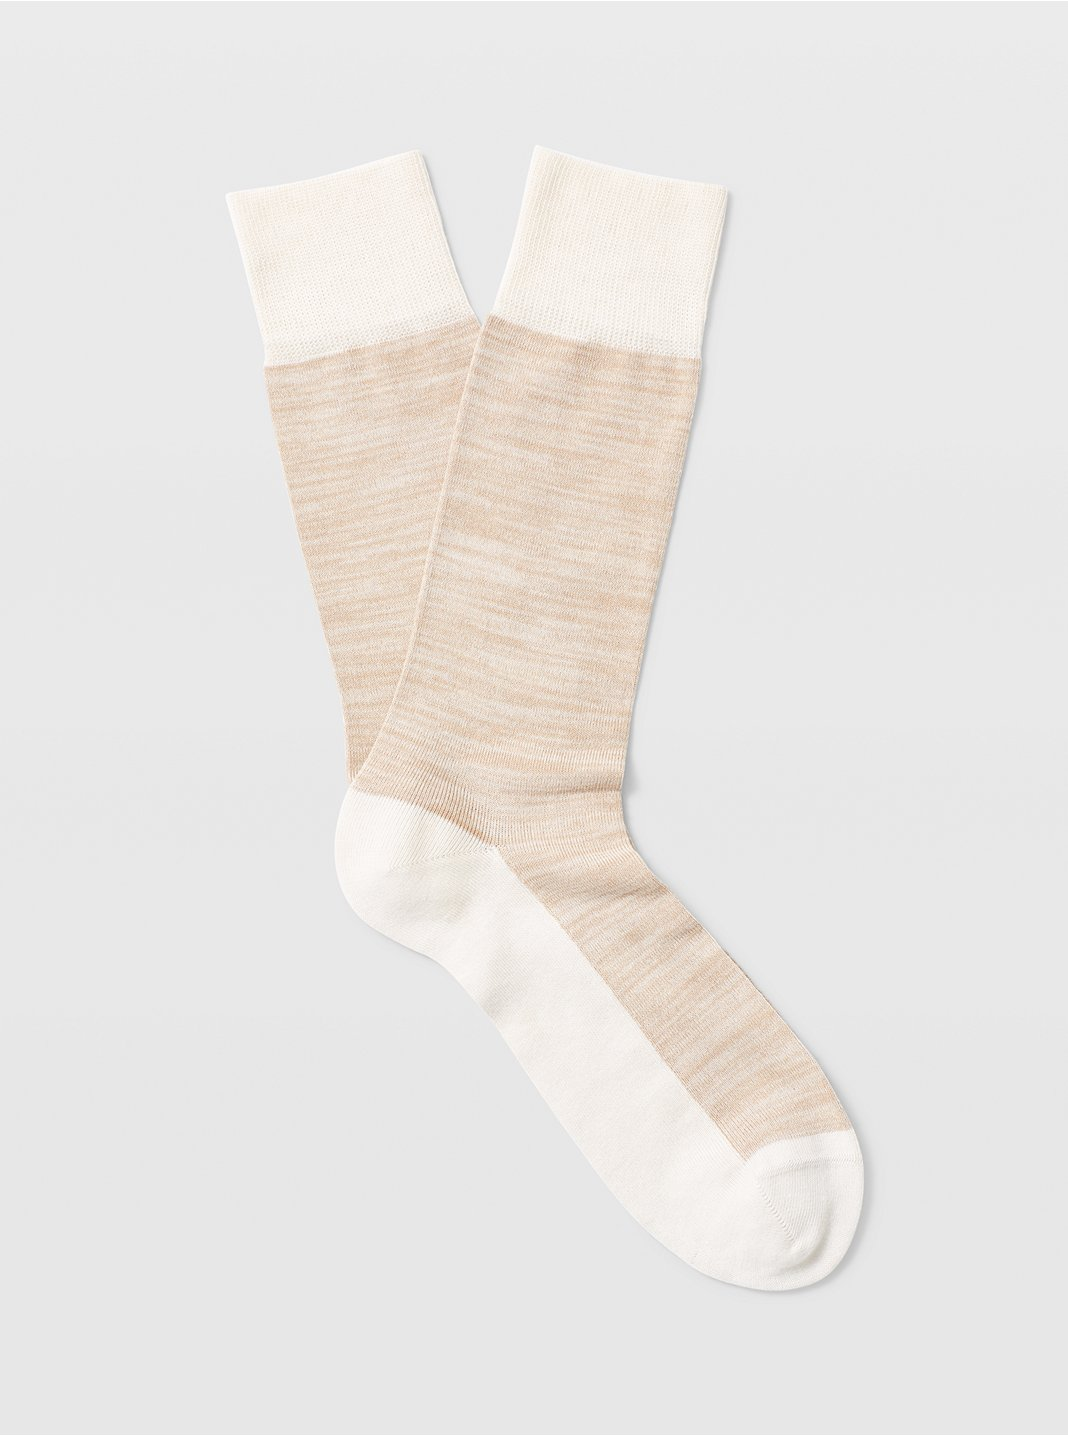 클럽 모나코 양말 Club Monaco Spacedye Sock,Tan